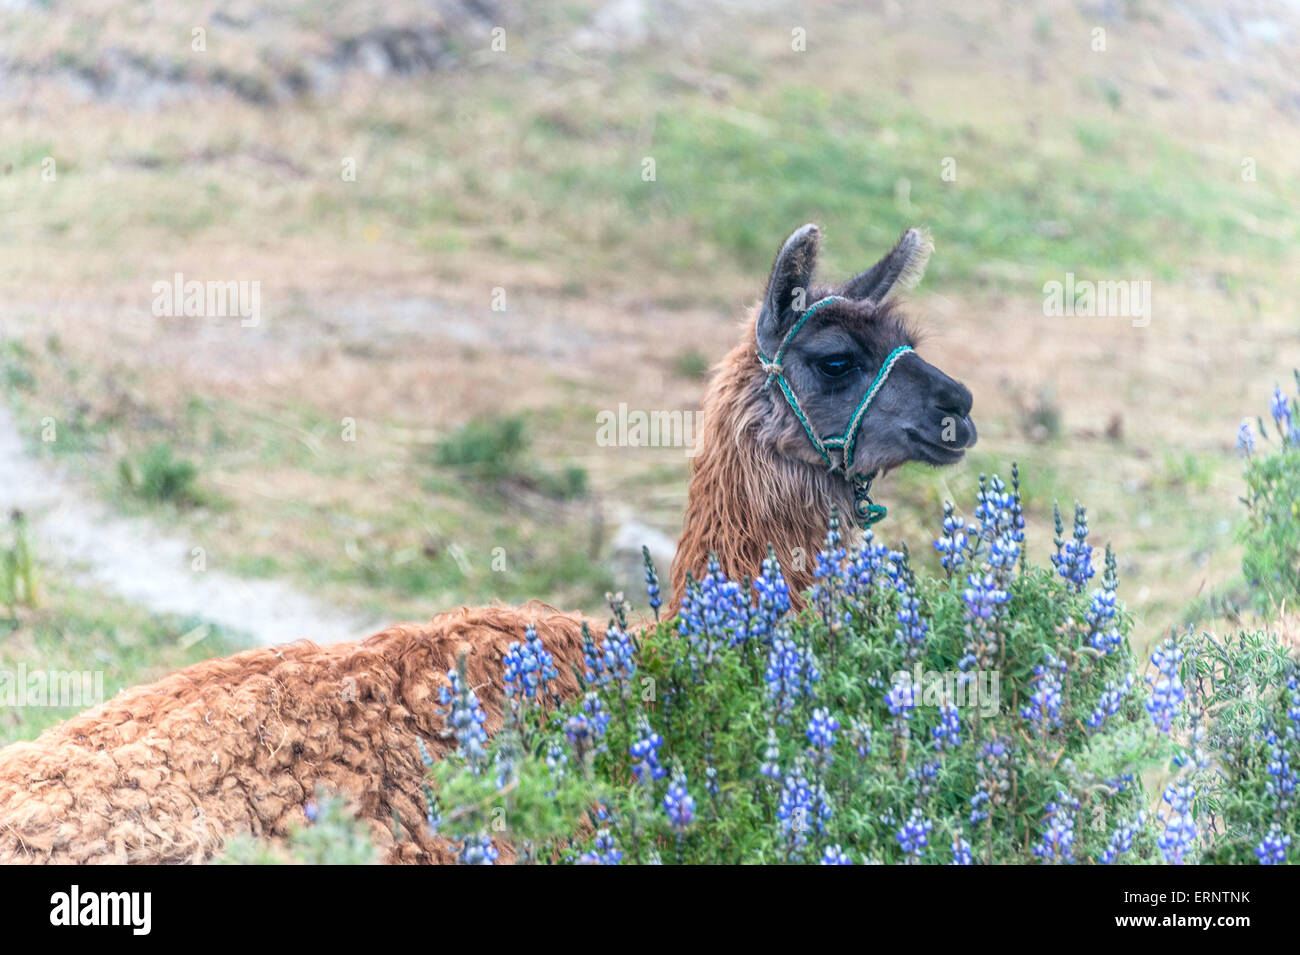 Llama, South American camelid, which live in the high alpine areas of the Andes - Stock Image